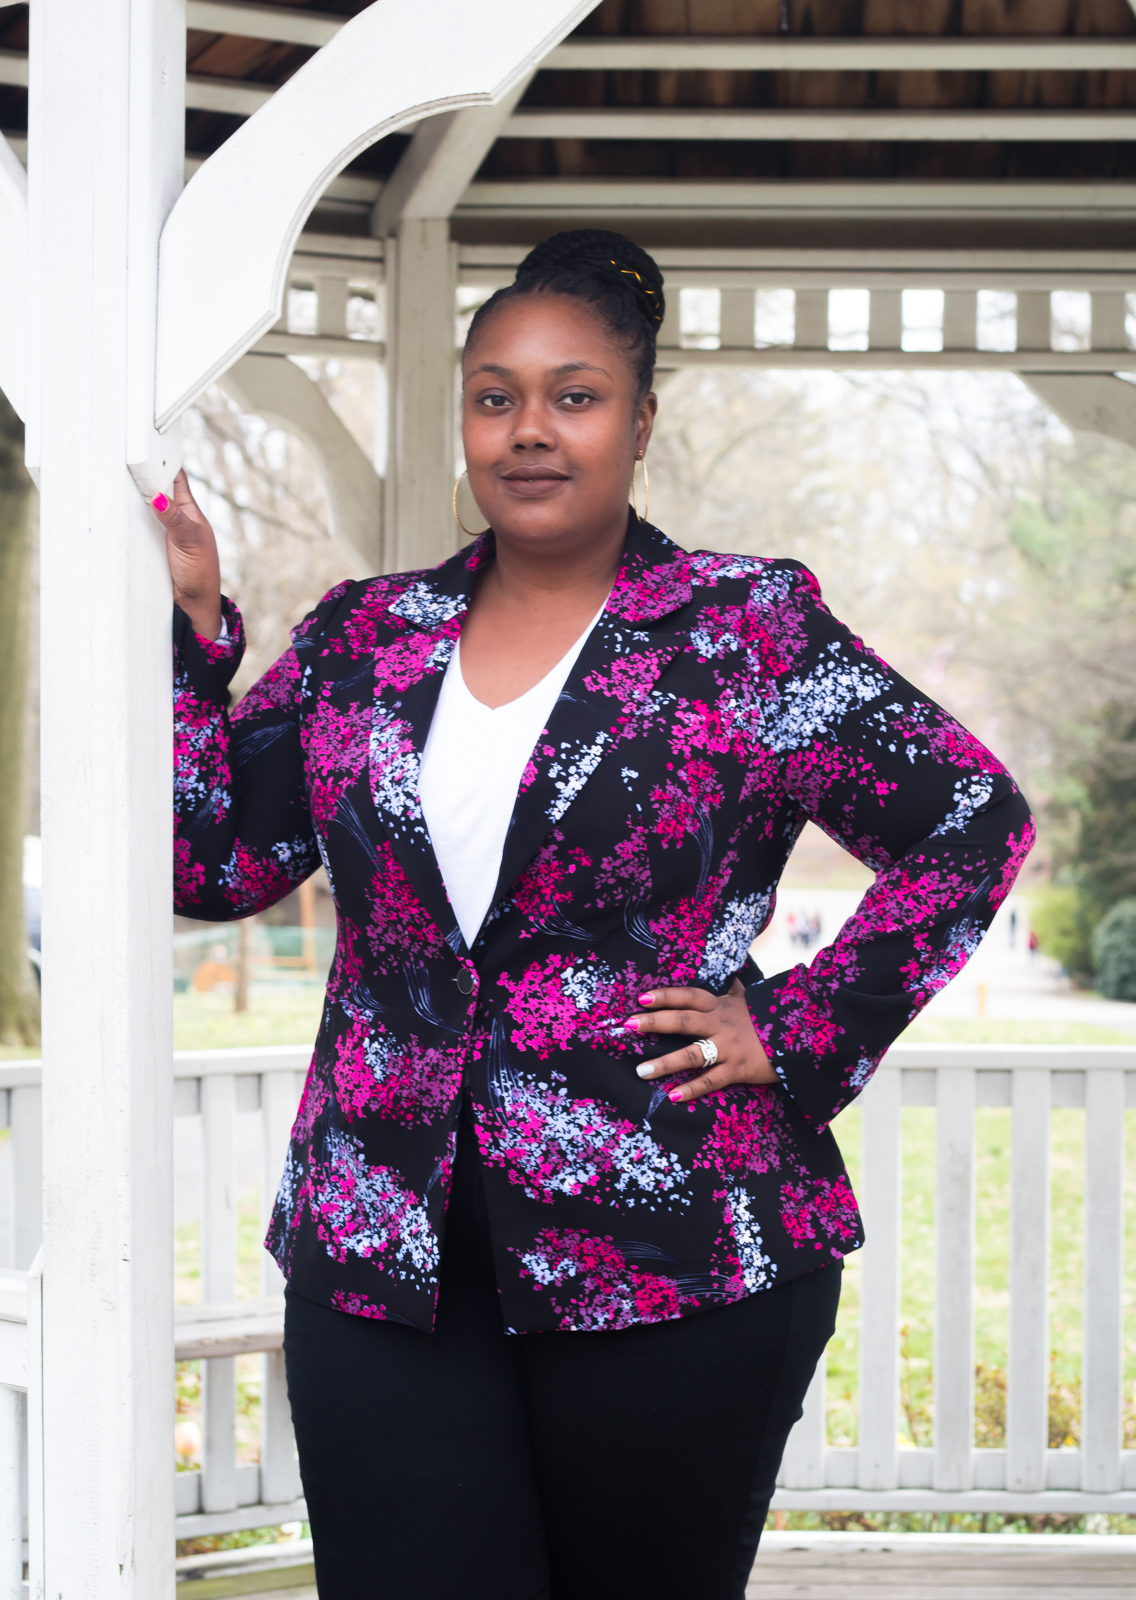 Founder and CEO of Oshun Family Center -